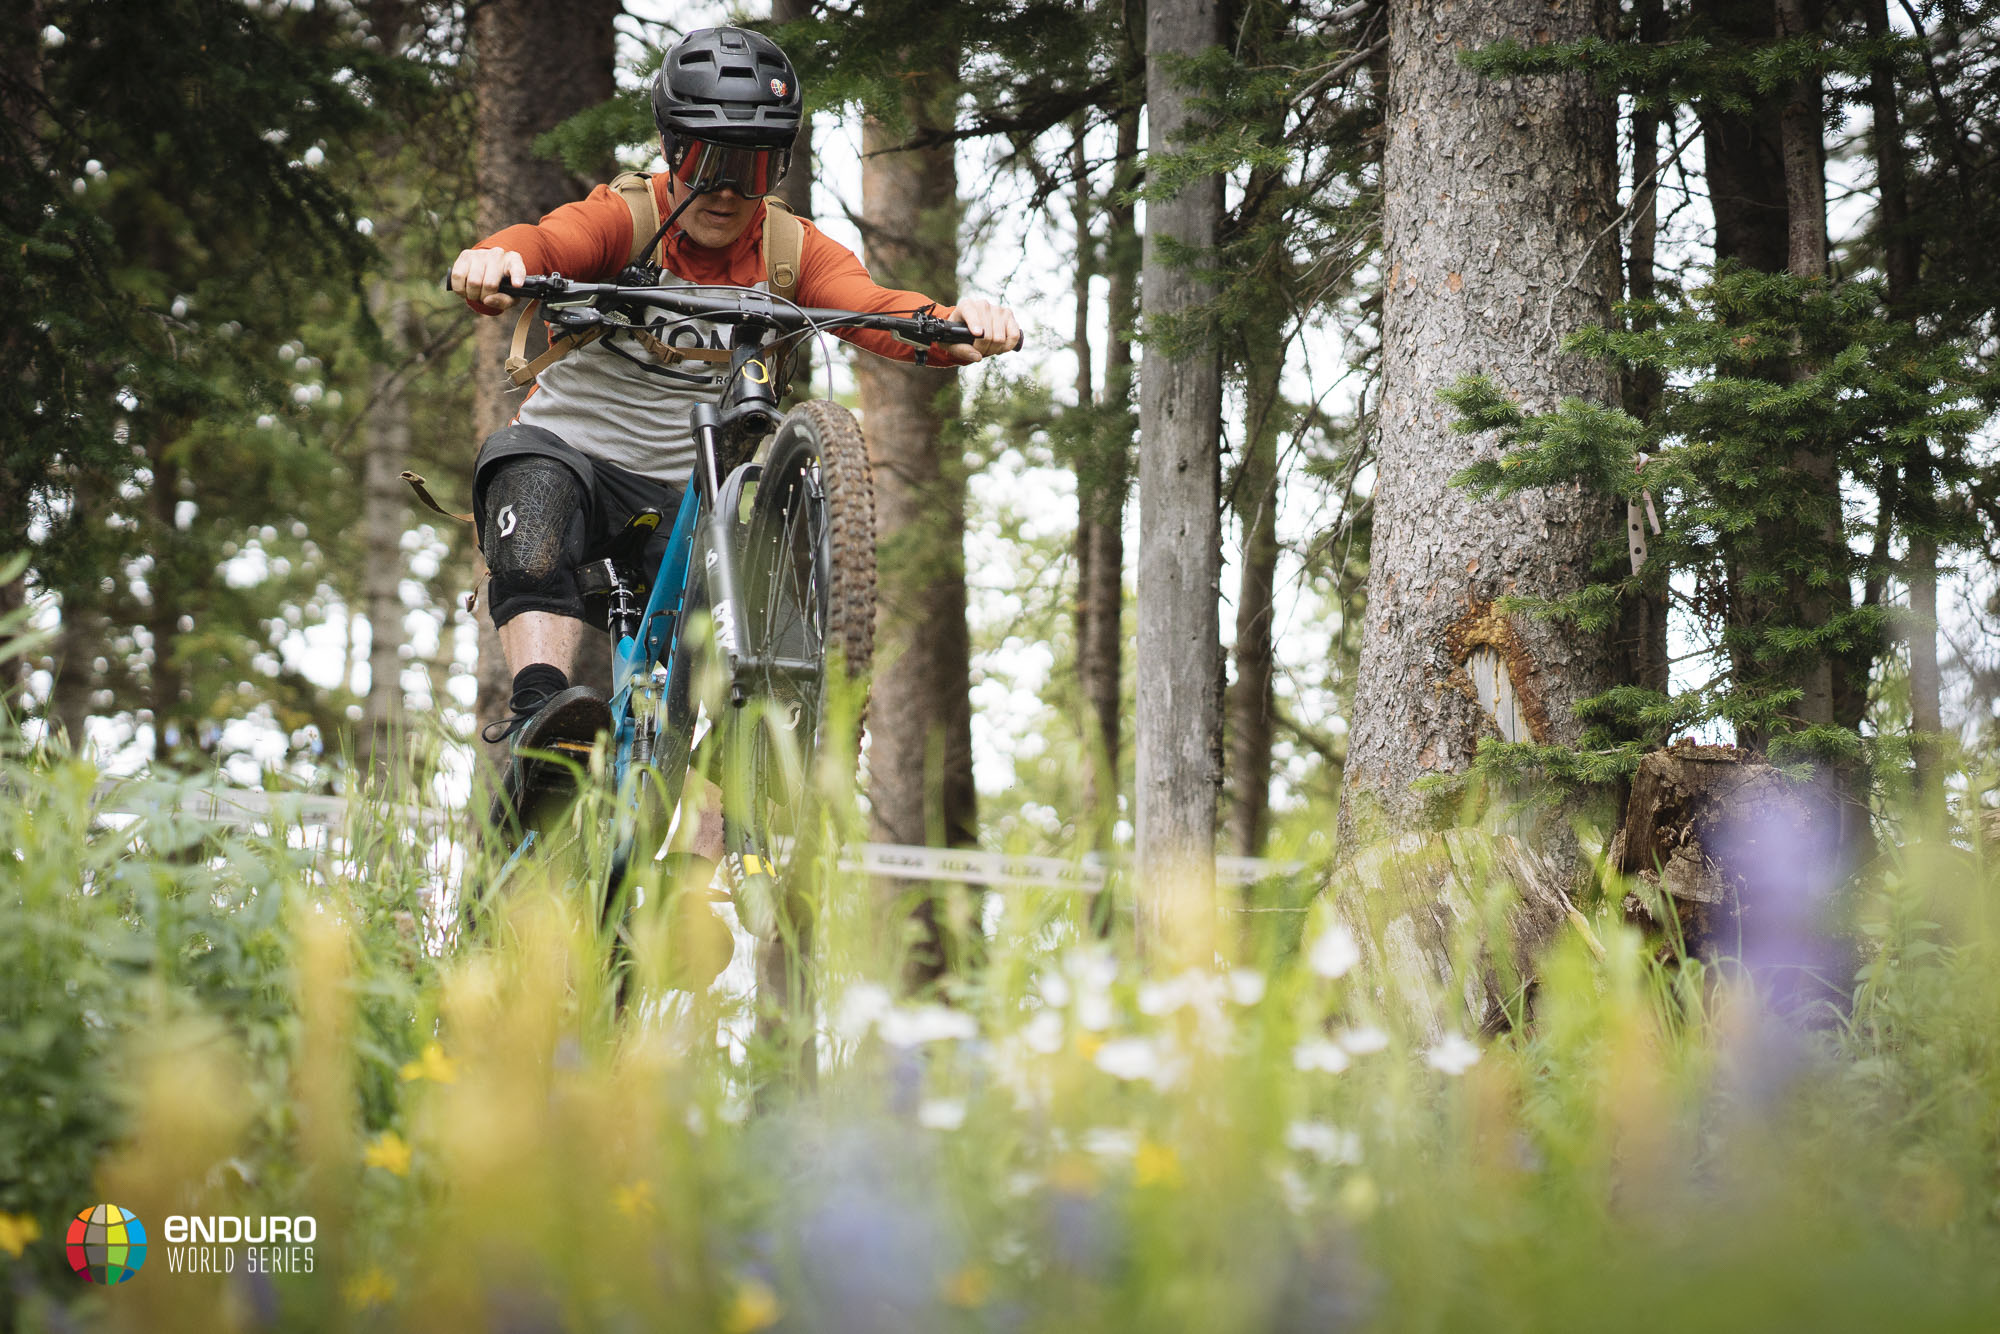 Image Courtesy of the Enduro World Series